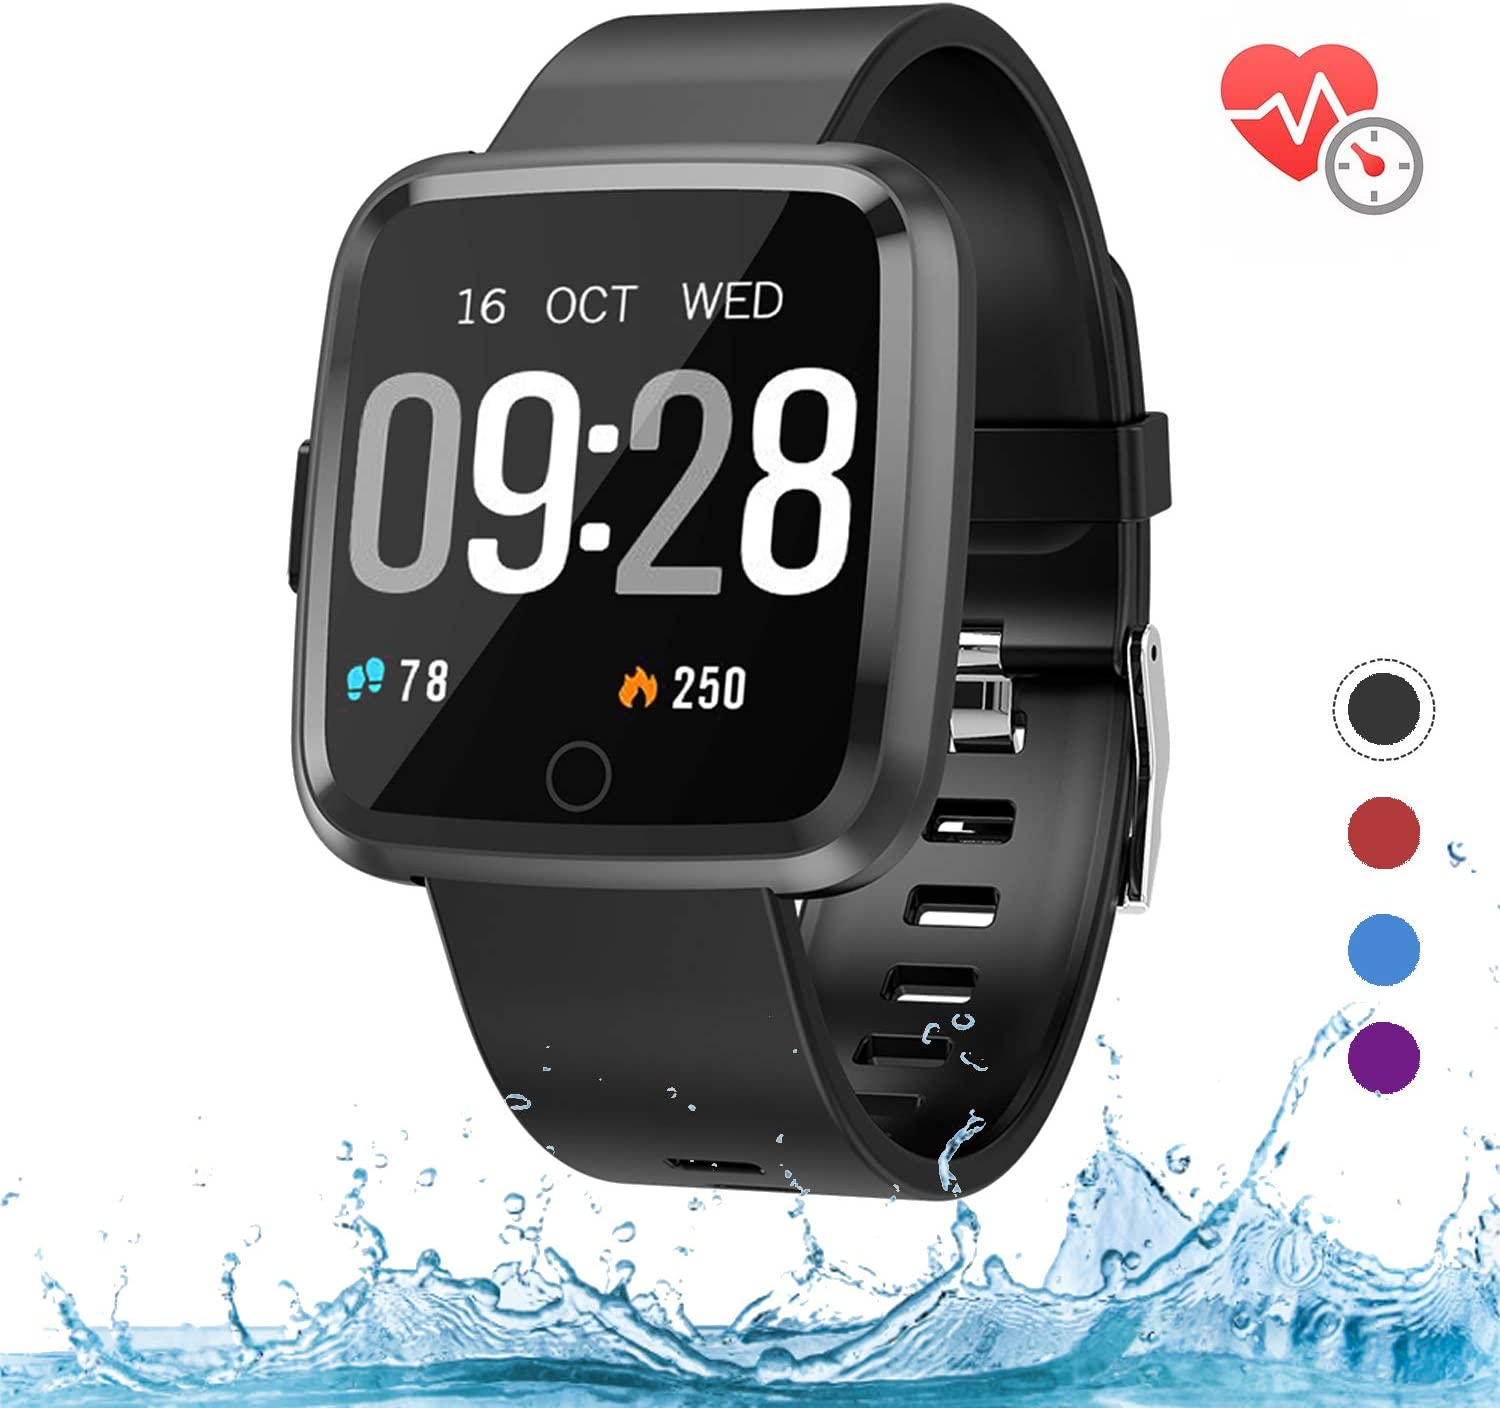 Fitness Tracker with Heart Rate Monitor,Fitness Watch Activity Tracker, IP68 Waterproof Sleep Monitor,Calories,Sleep Monitor,Alarm Clock,Call SMS Notice for Men Women Kids